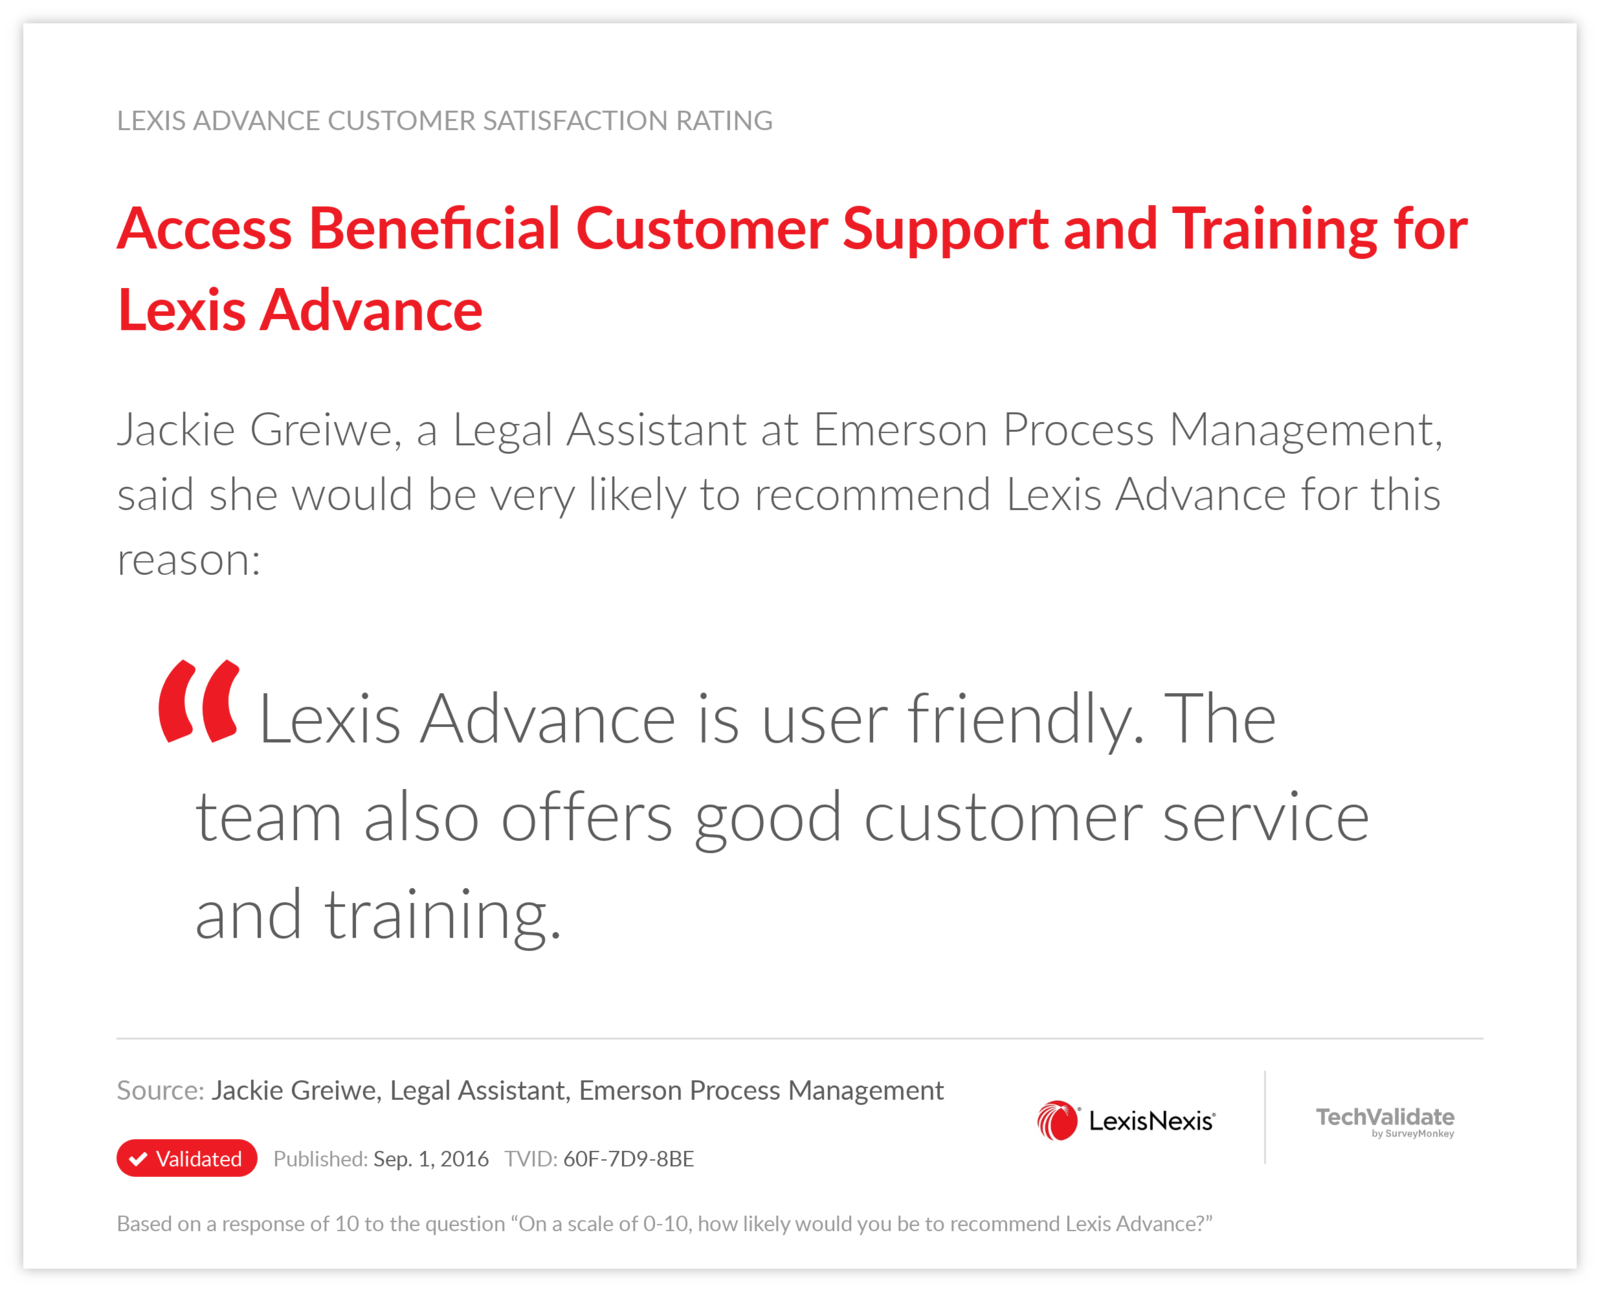 professional services lexis advance